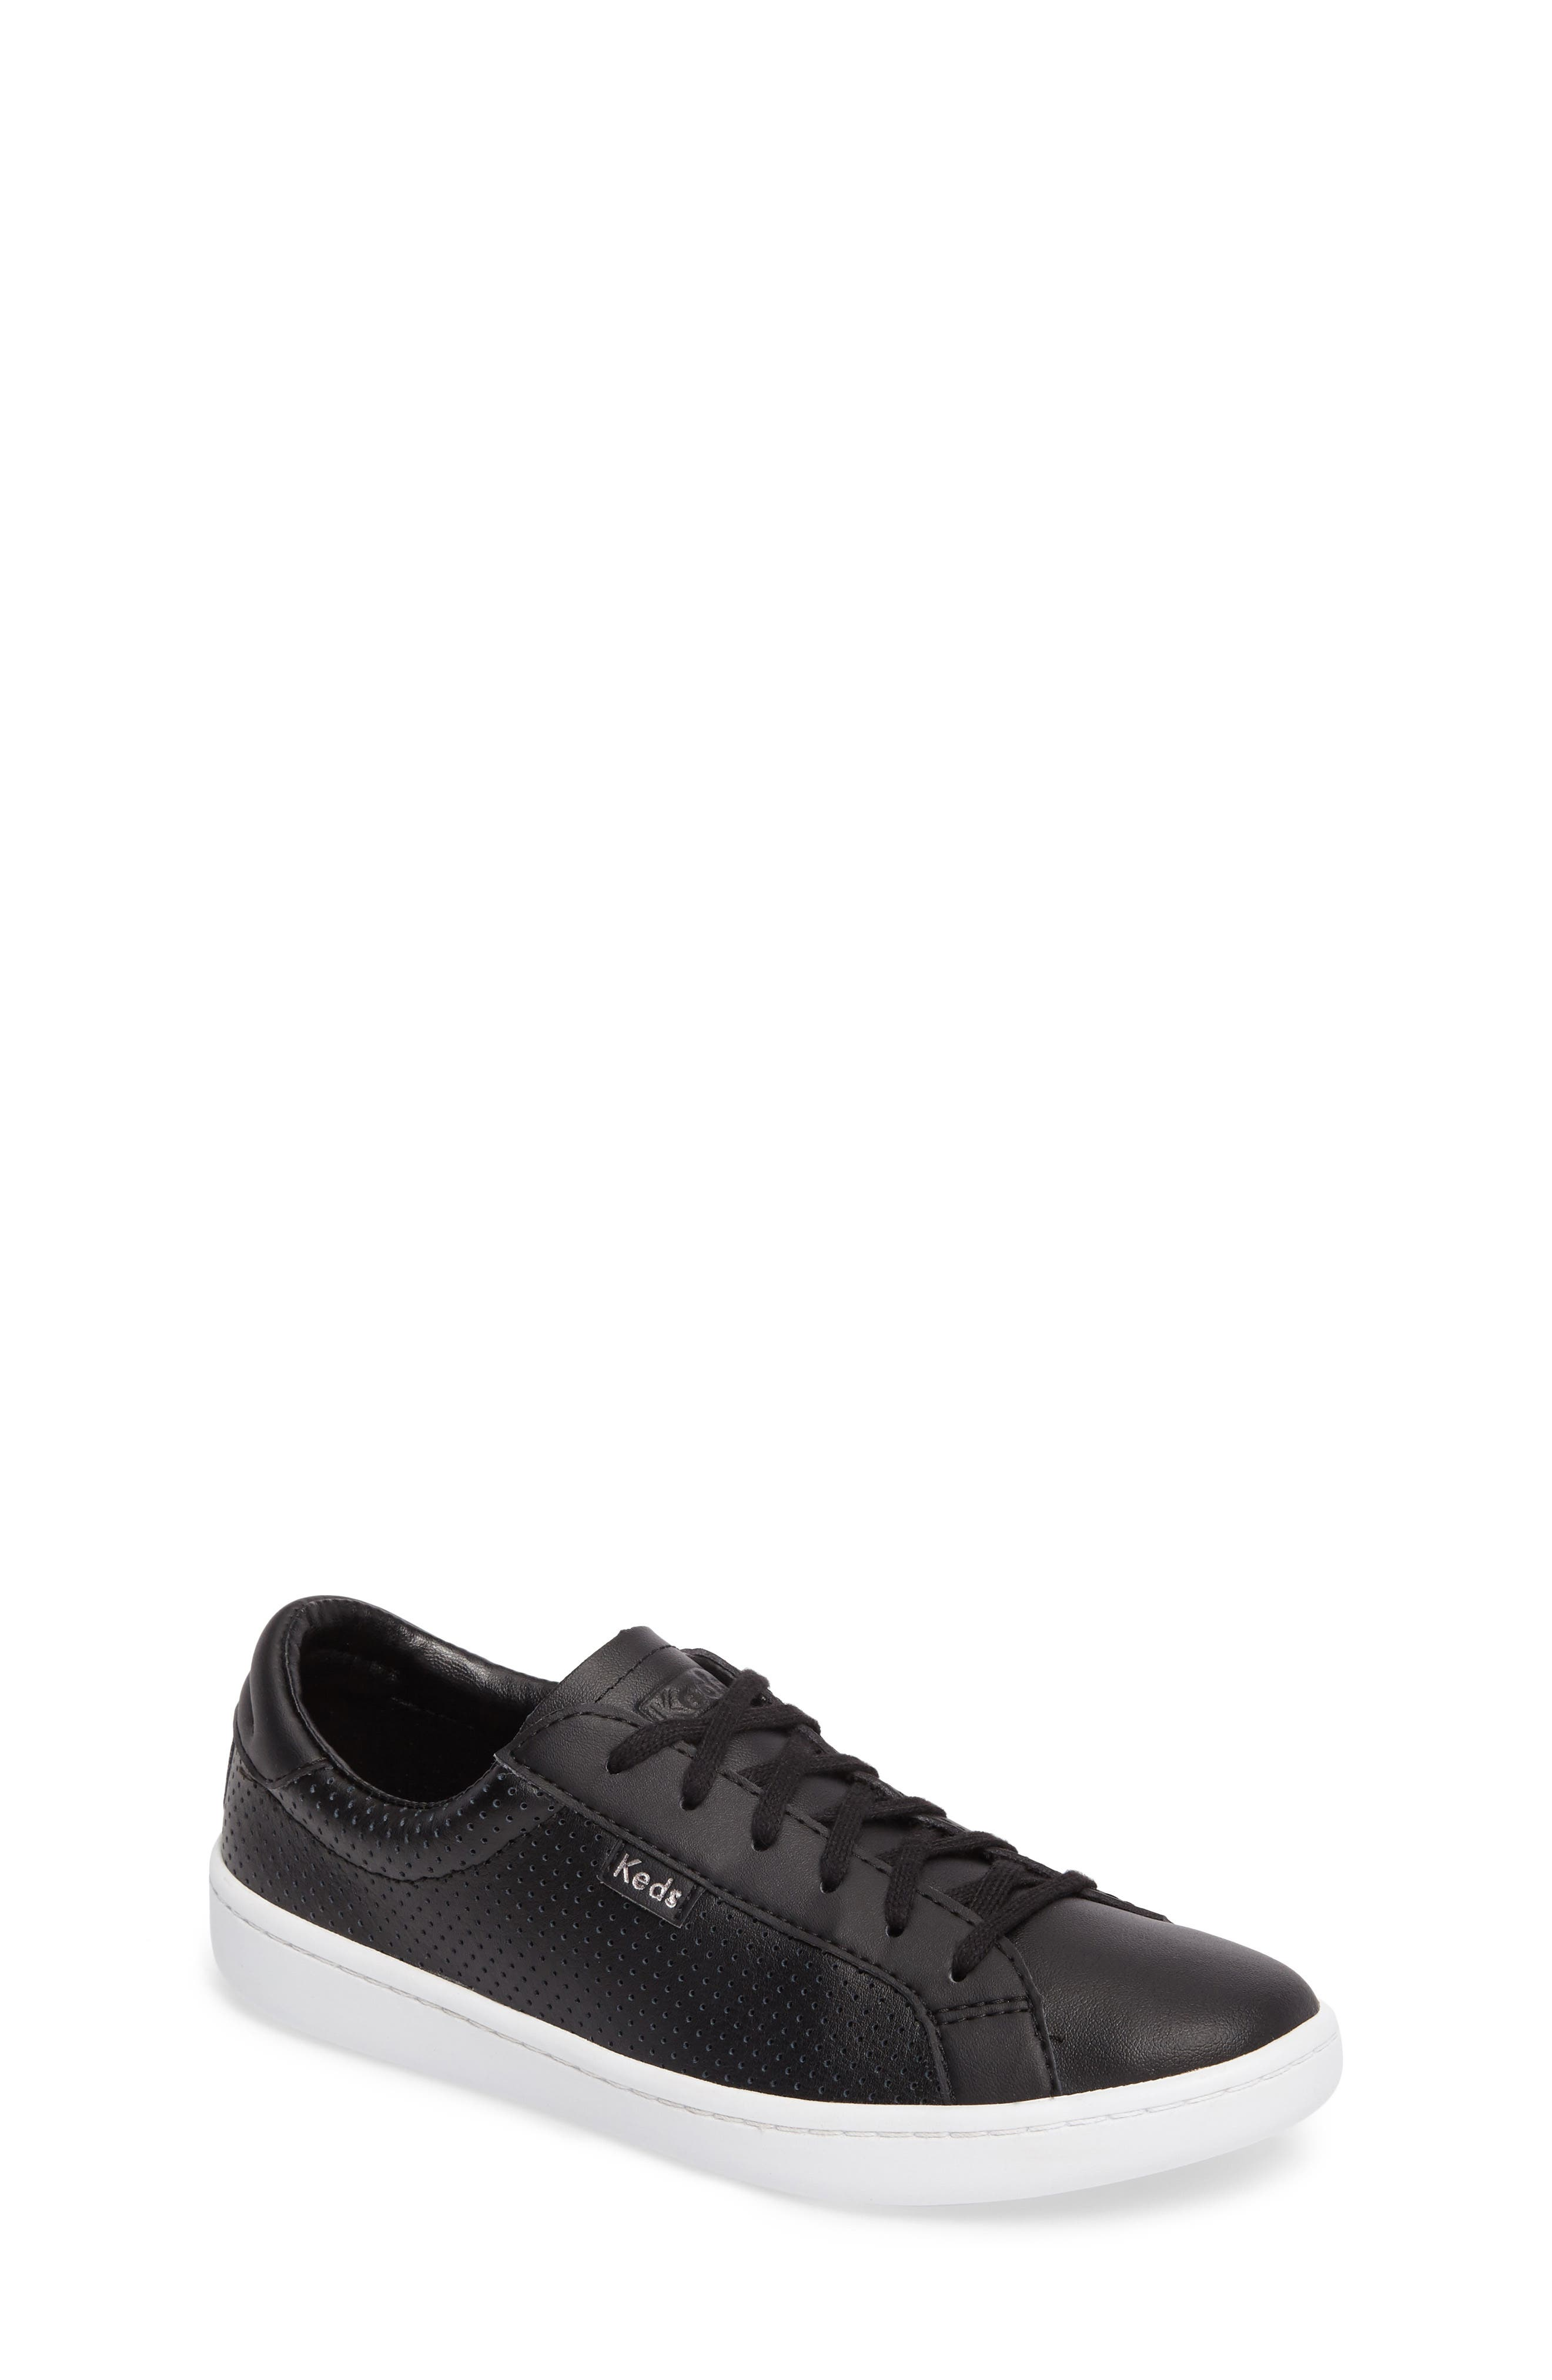 Alternate Image 1 Selected - Keds® Ace Perforated Low Top Sneaker (Toddler, Little Kid & Big Kid)